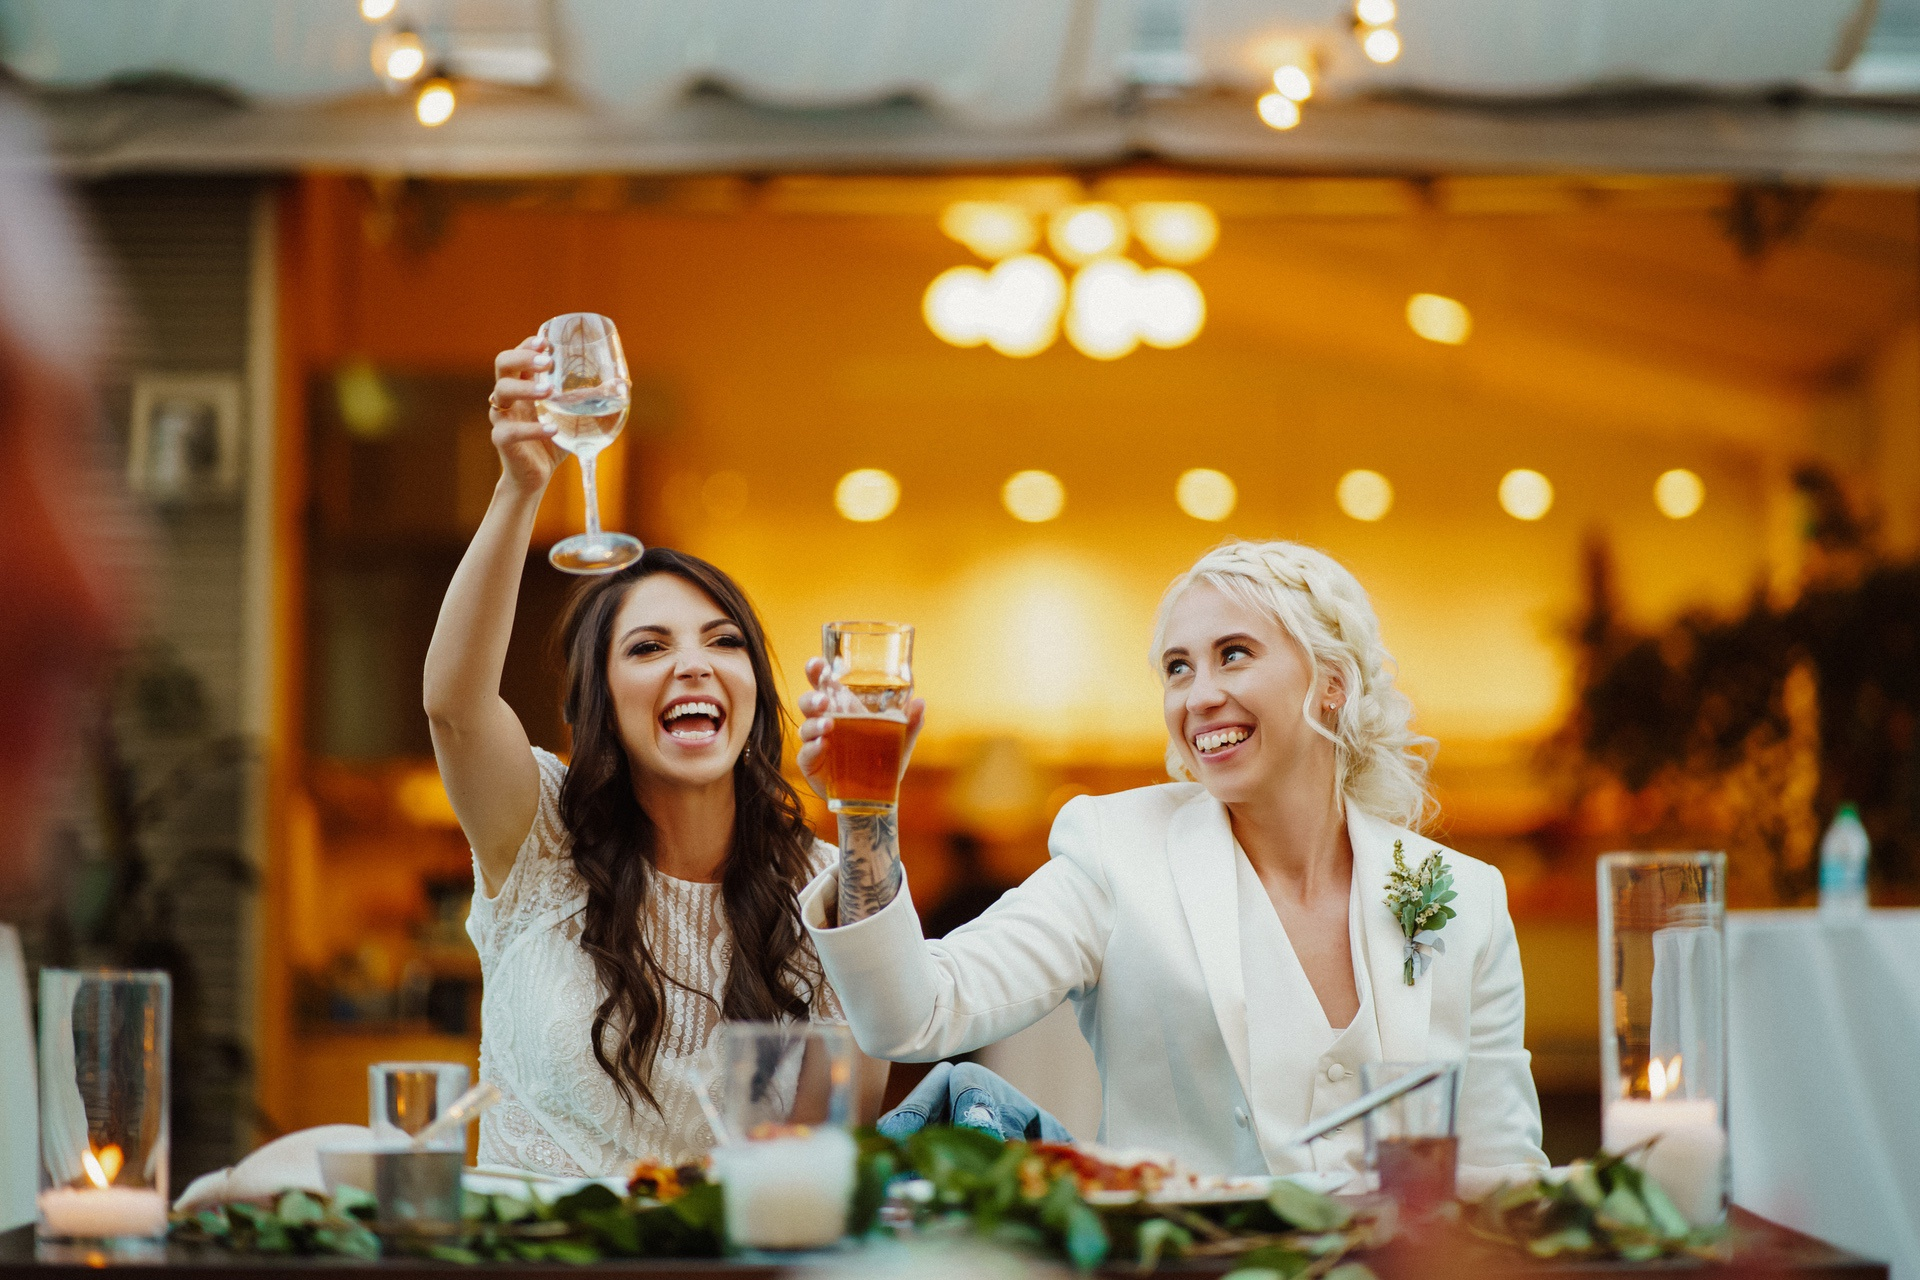 Smiling wedding guests lifting glasses during toast